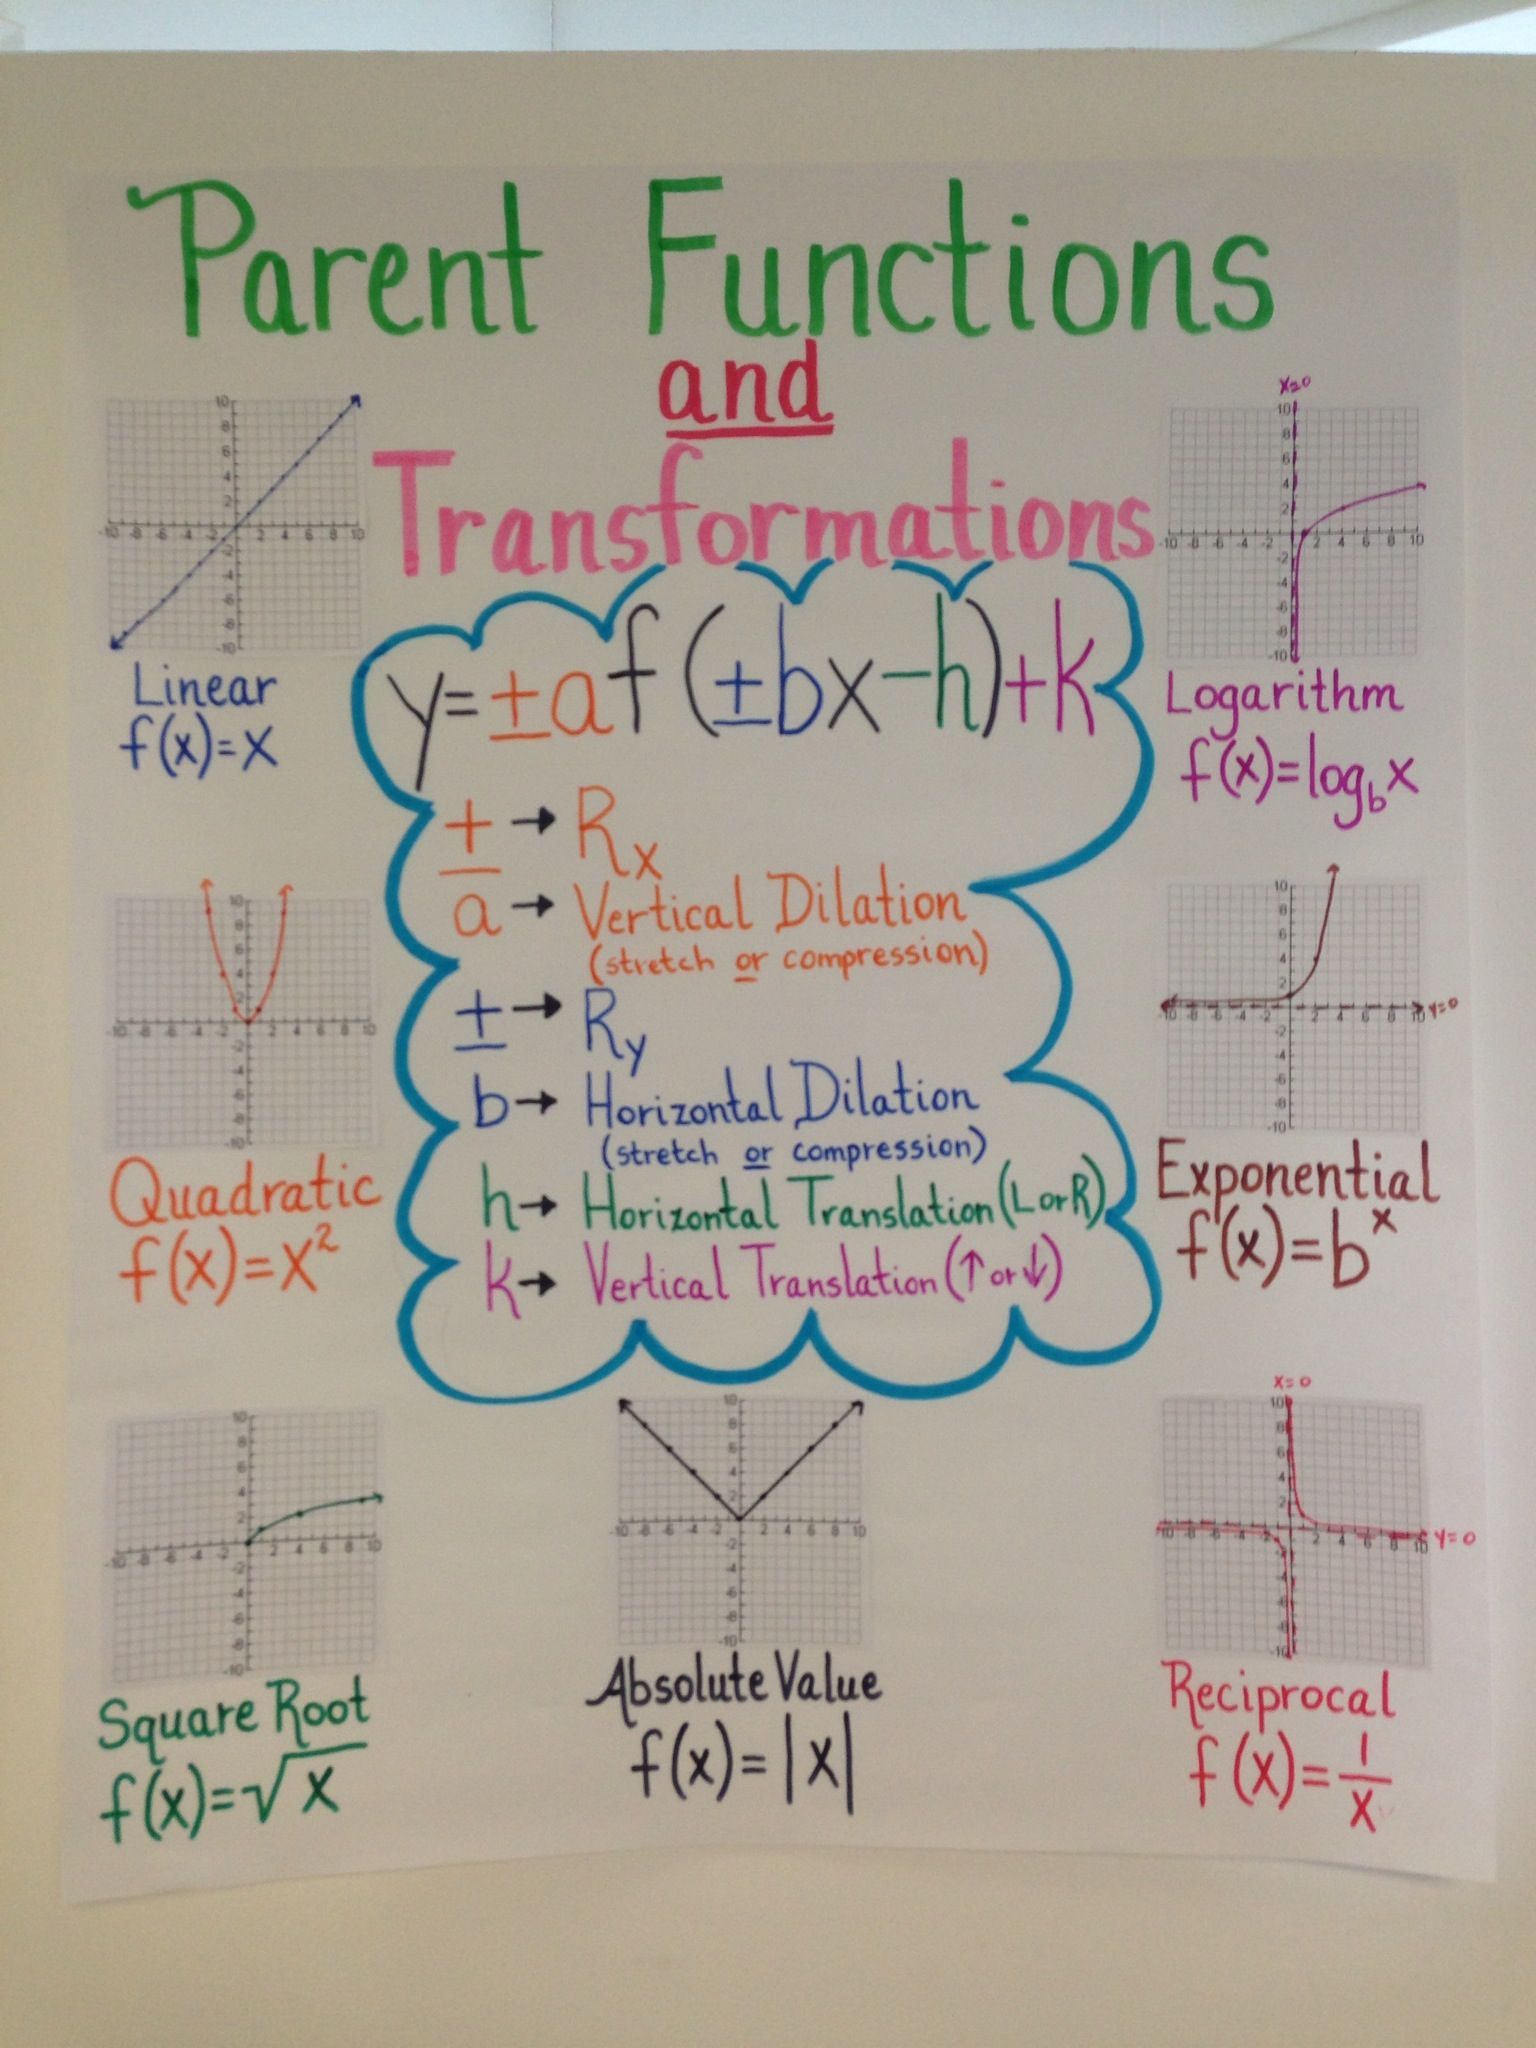 Anchor Chart For Algebra Ii Eoc Review On Parent Functions And Transformations